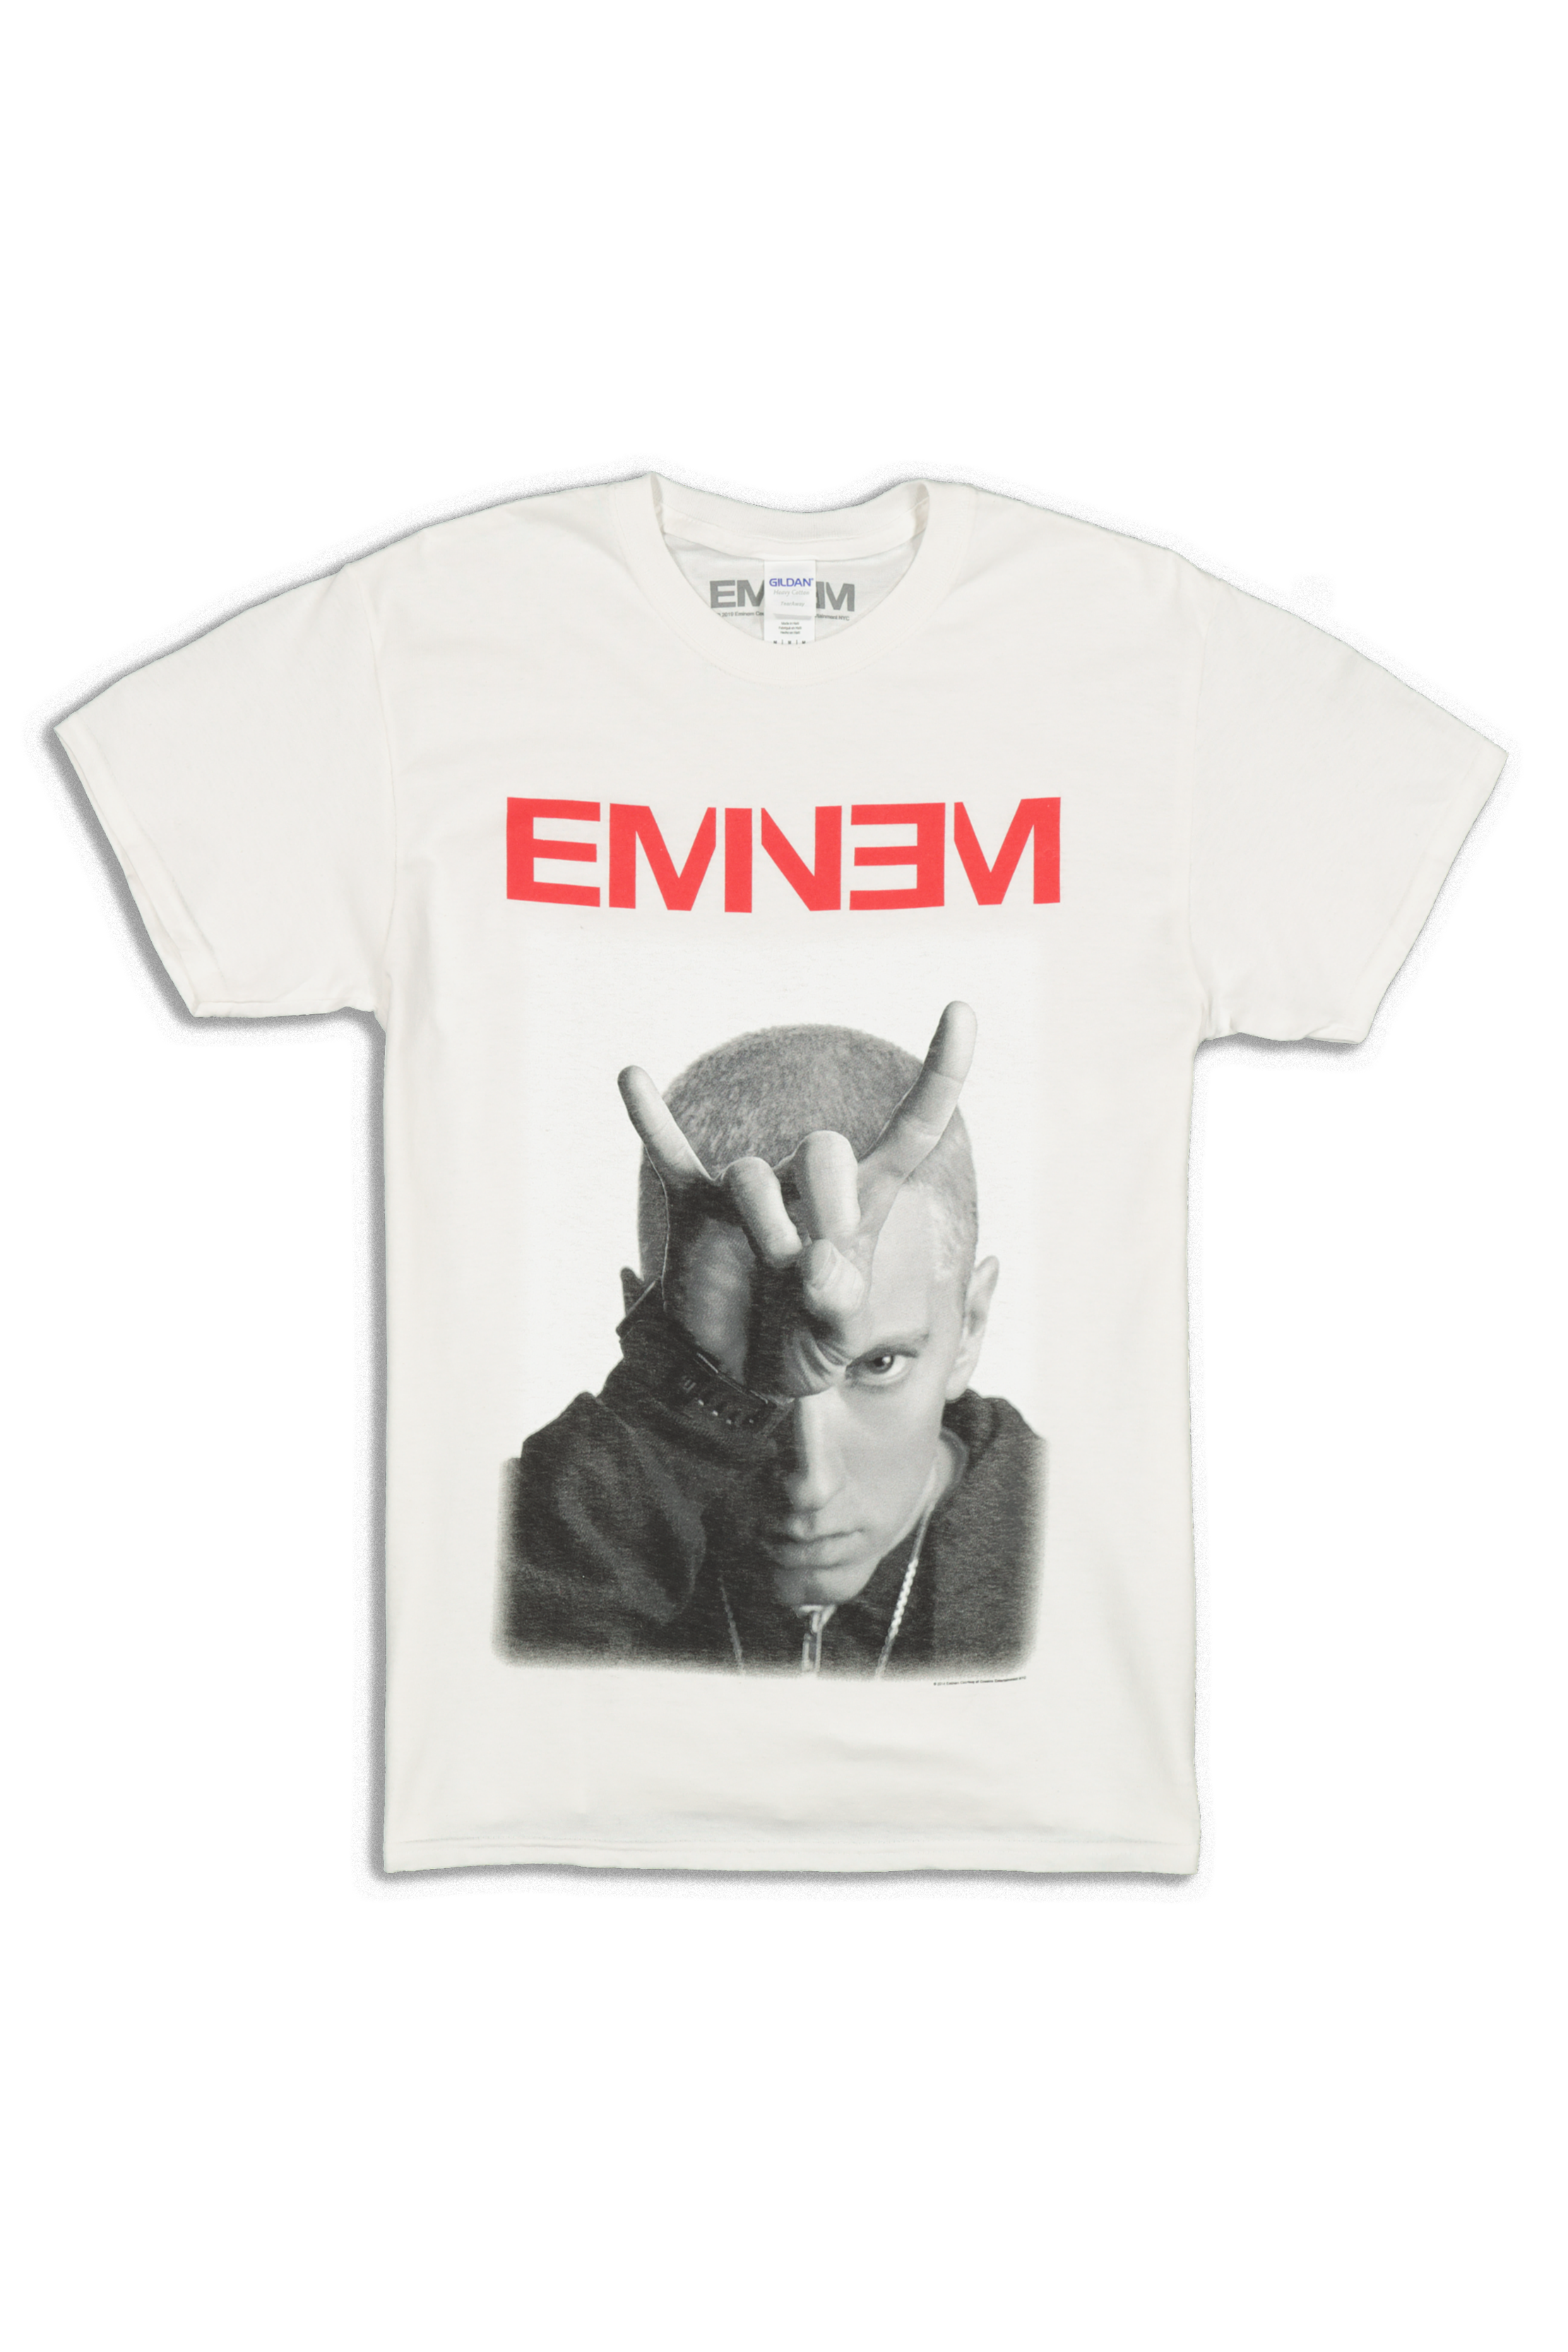 Eminem Shirt Devil Horn Slim Shady Hip Hop Black White T-Shirt S,M,L,XL,2XL